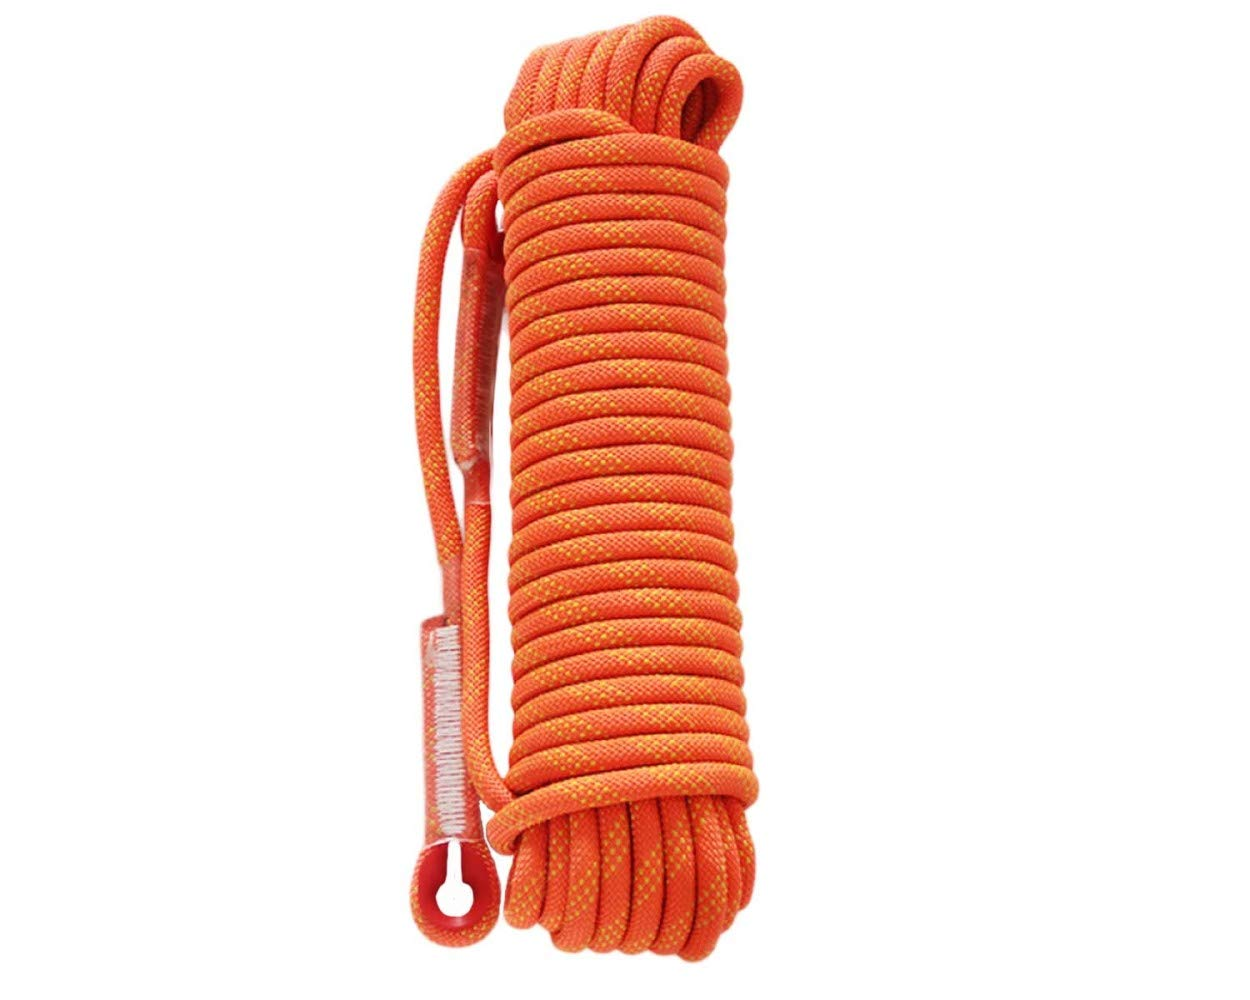 Orange ZAIYI-Climbing rope Alpinisme Aventure Randonnée Camping en Plein Air Sécurité Anti-Glissement Porter Corde 12   14mm,Orange-50m12mm 40m14mm